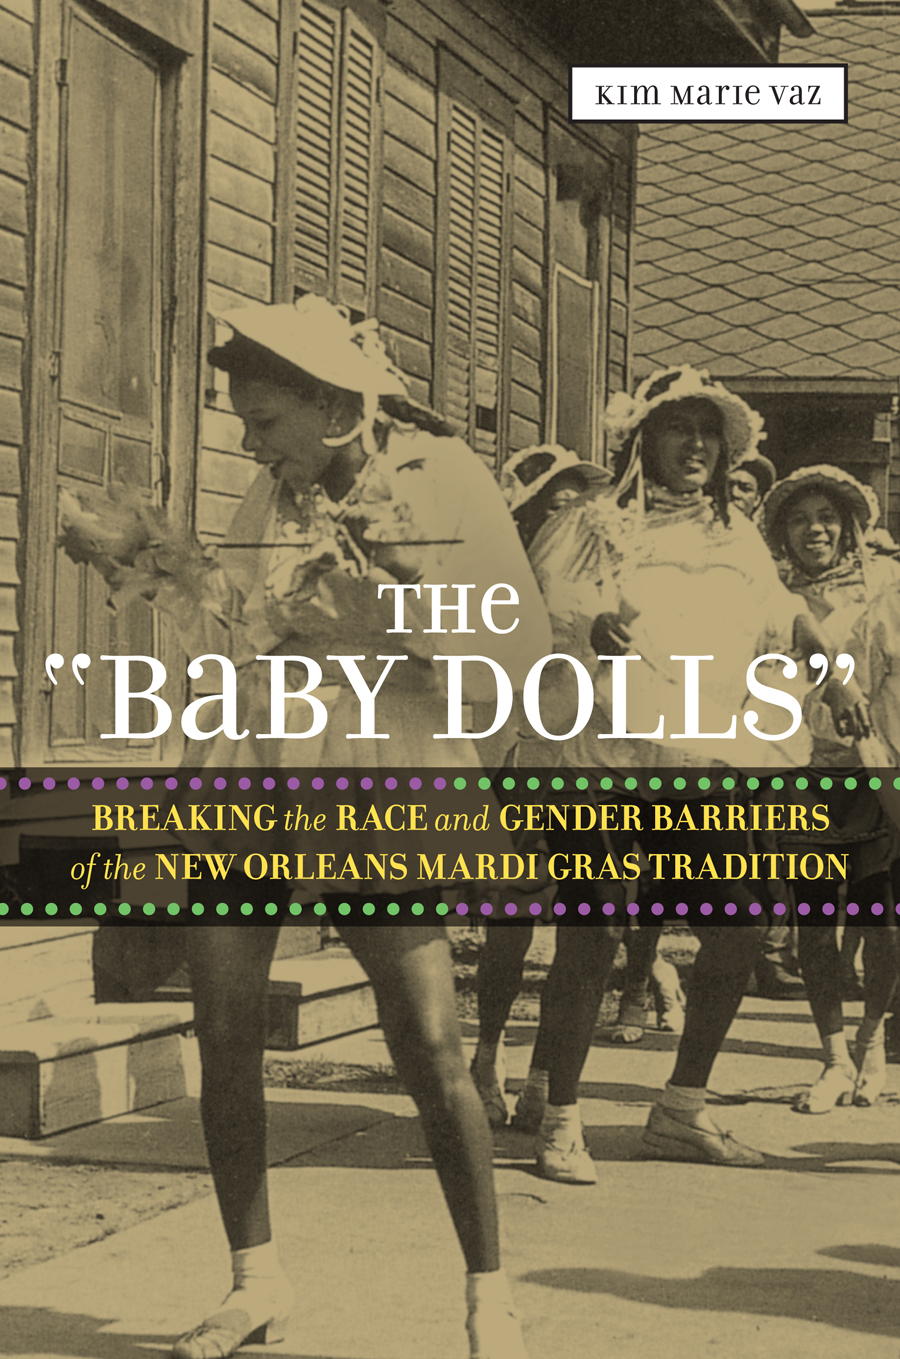 The Baby Dolls book cover photo